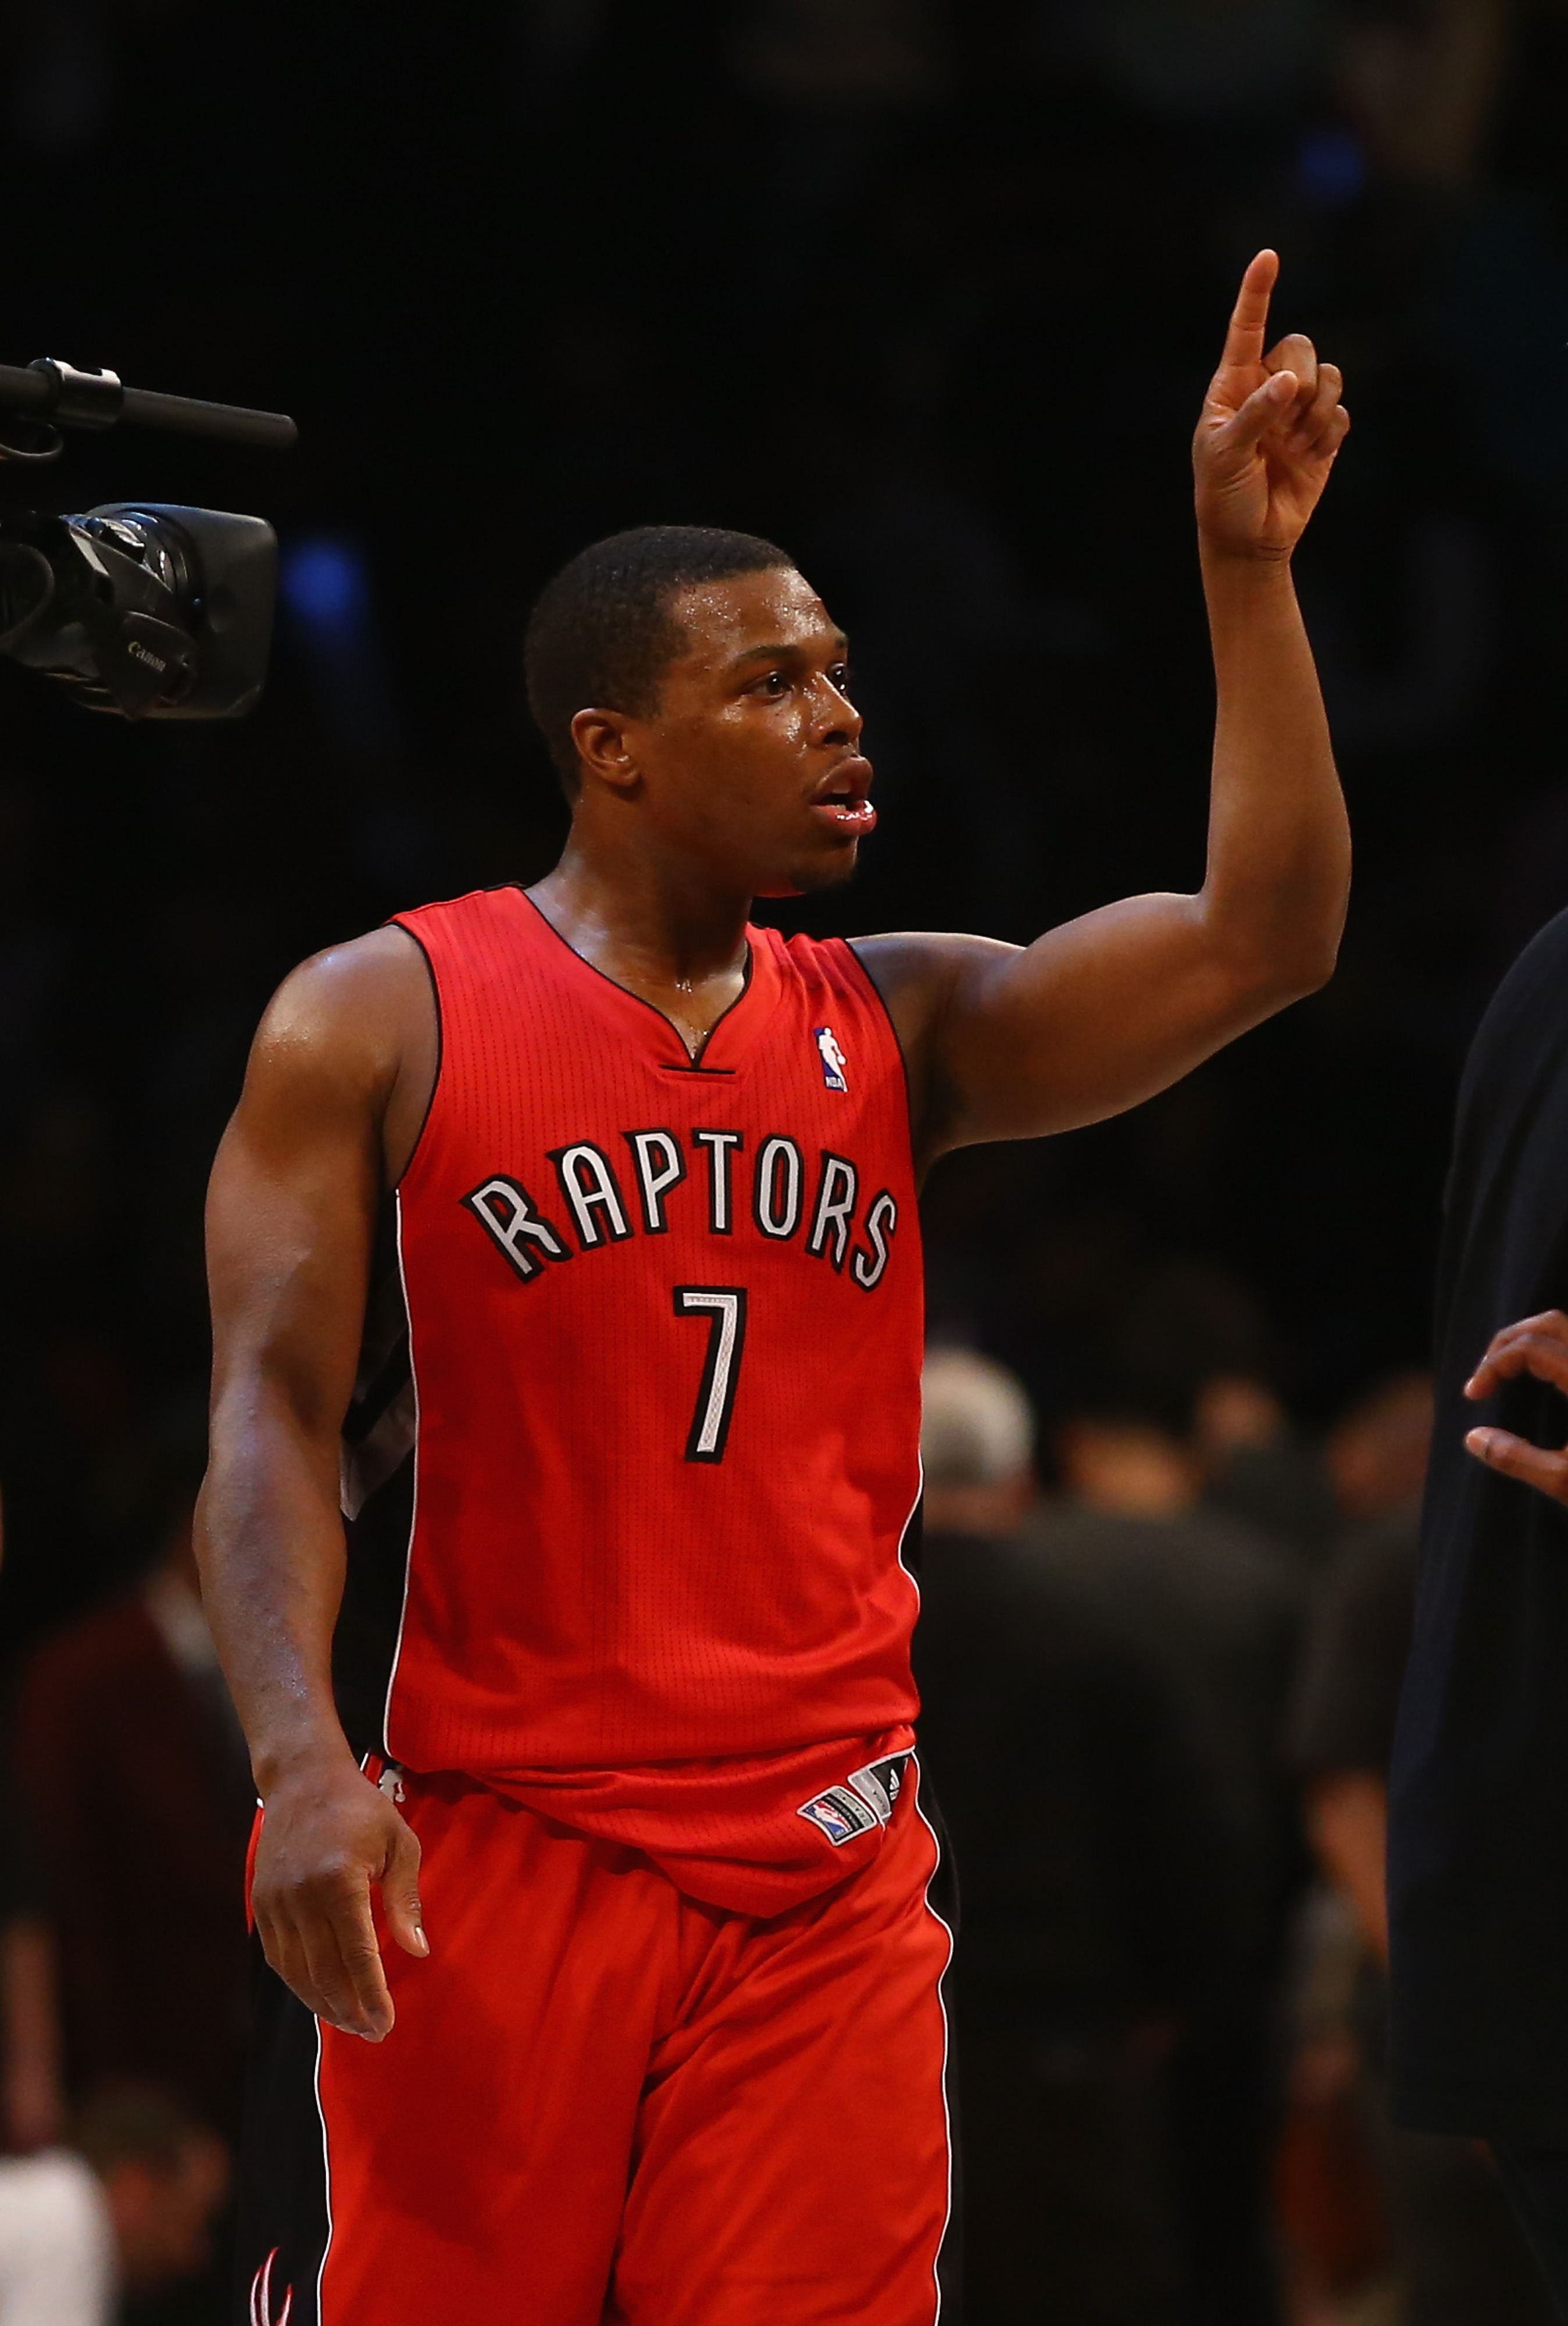 Will Kyle Lowry leave the Raptors? Rockets, Lakers chasing